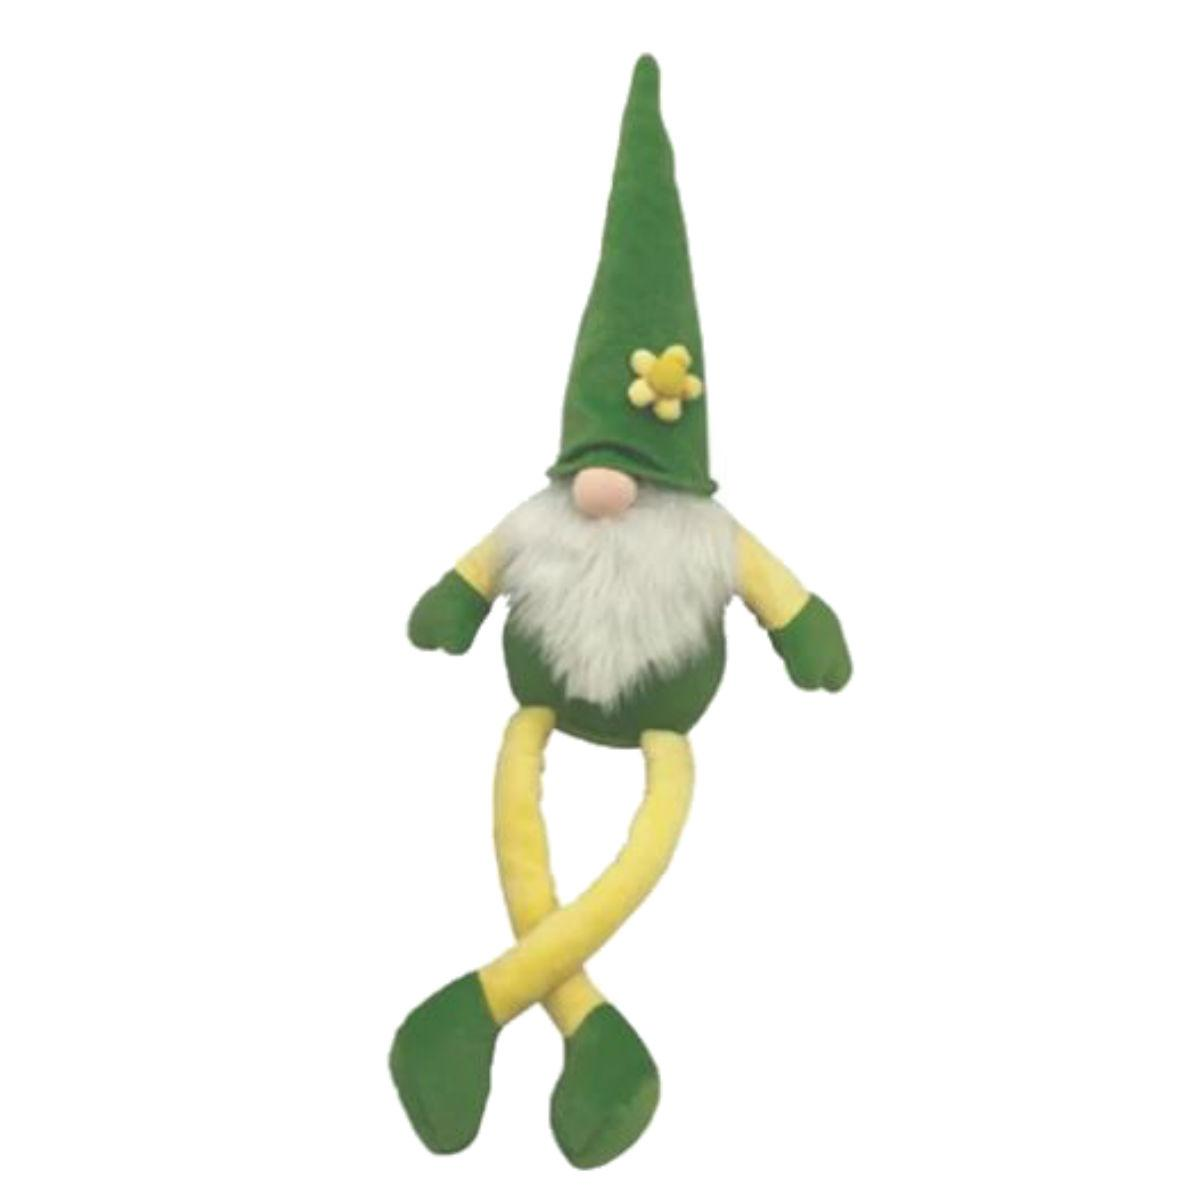 PetLou Long-Legged Gnome - Green